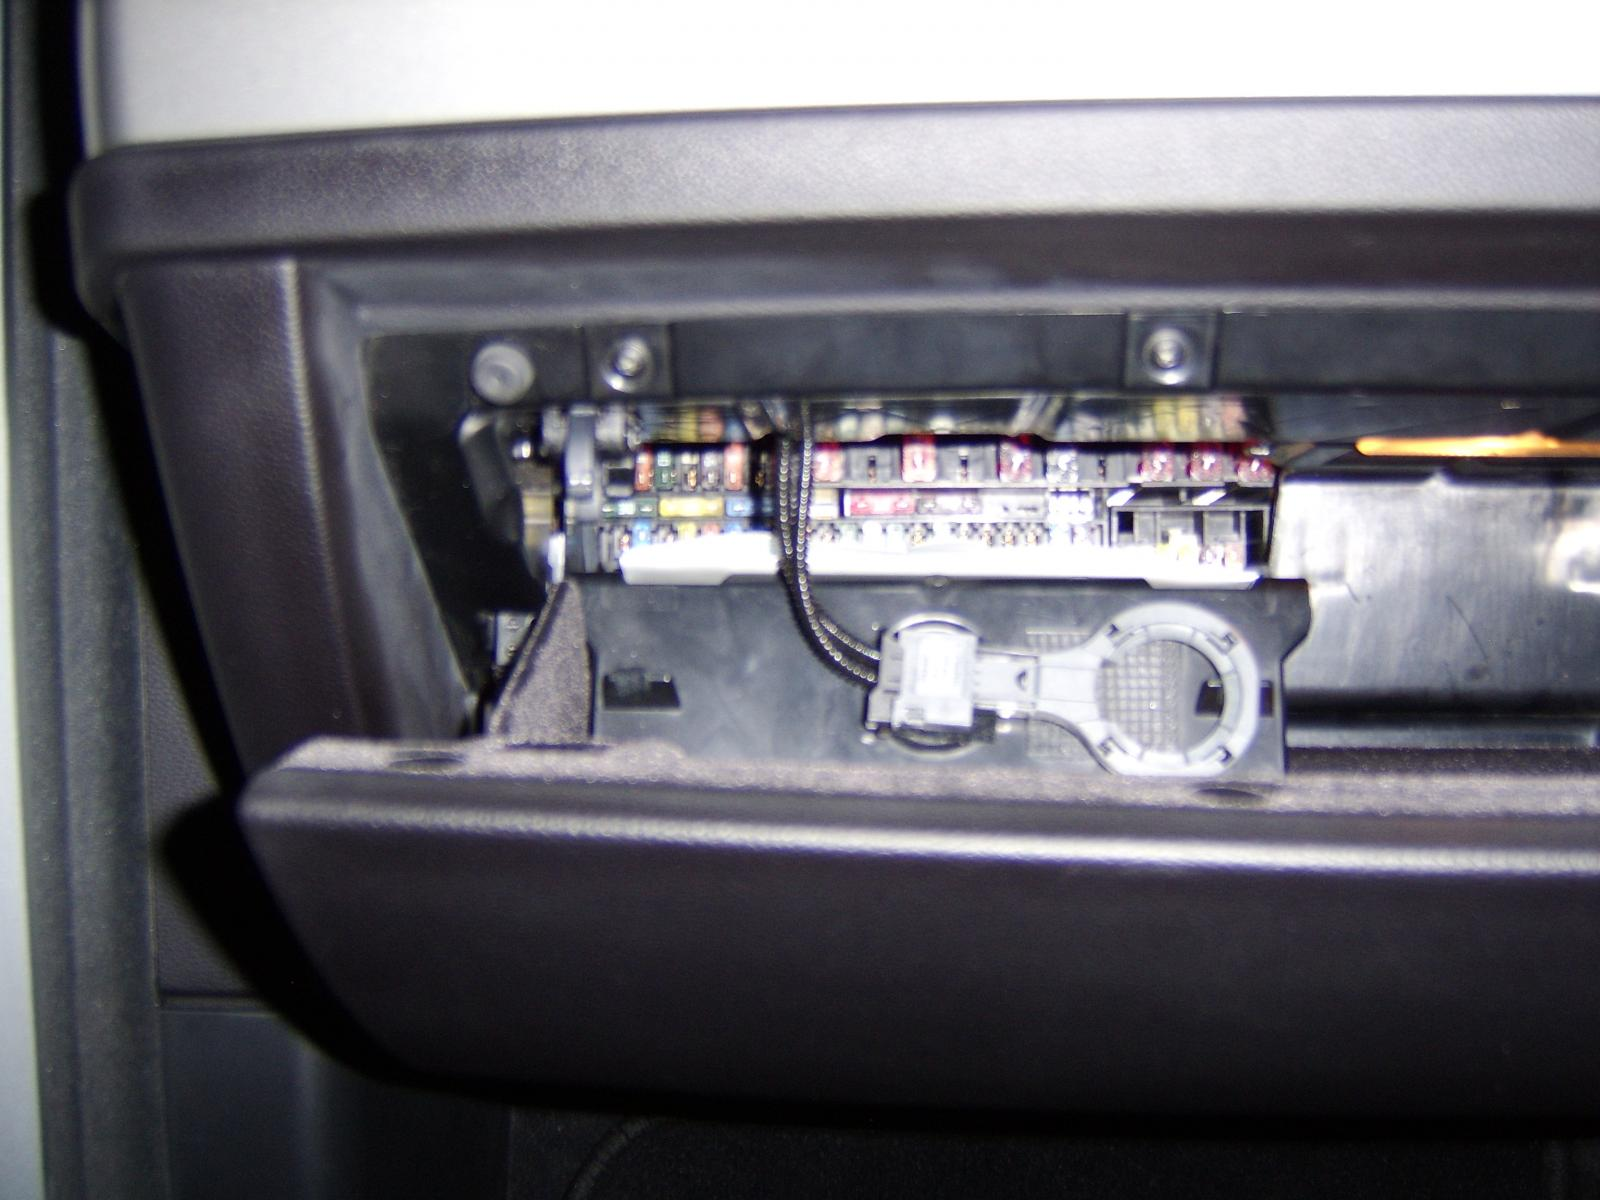 E70 Fuse Box Location Wiring Library 2006 Pontiac G6 Located